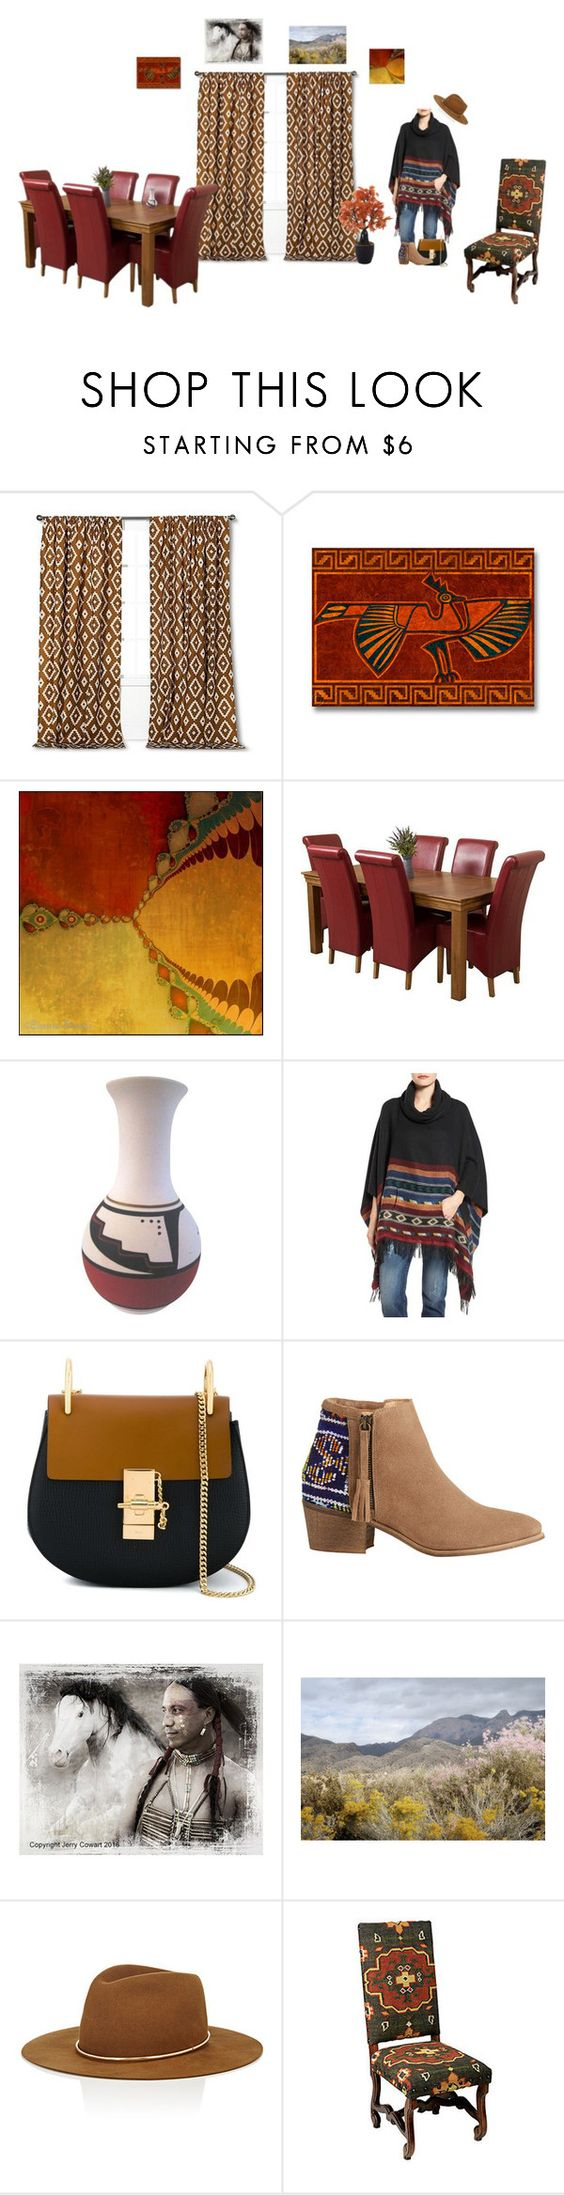 Threshold home decor shop for threshold home decor on polyvore - A Home Decor Collage From December 2016 Featuring Leather Dining Table Nailhead Accent Chair And Threshold Home Decor Browse And Shop Related Looks